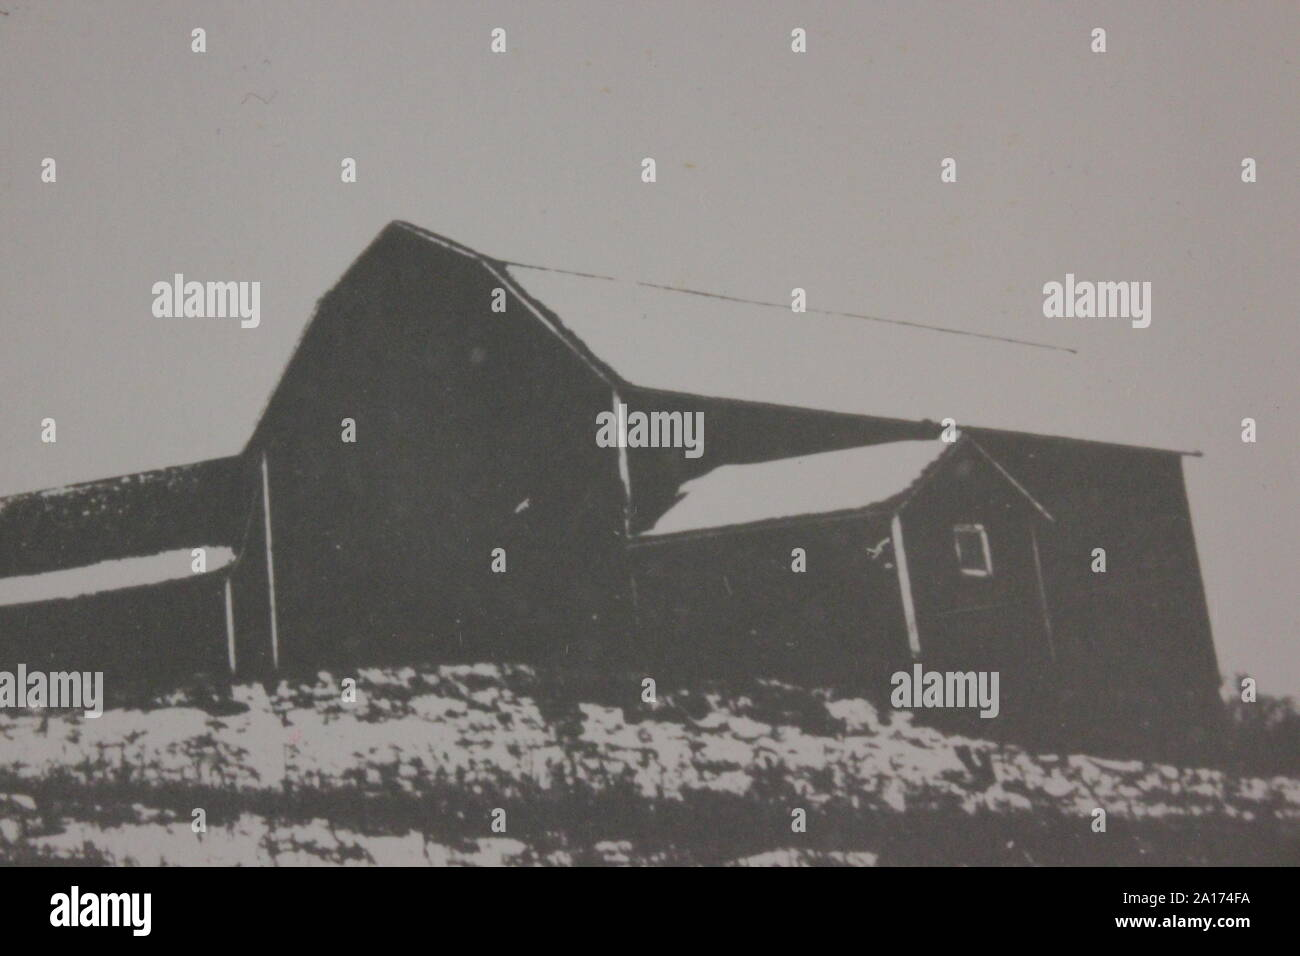 Fine black and white art photography from the 1970s of a barn sitting on top of a hill. Stock Photo